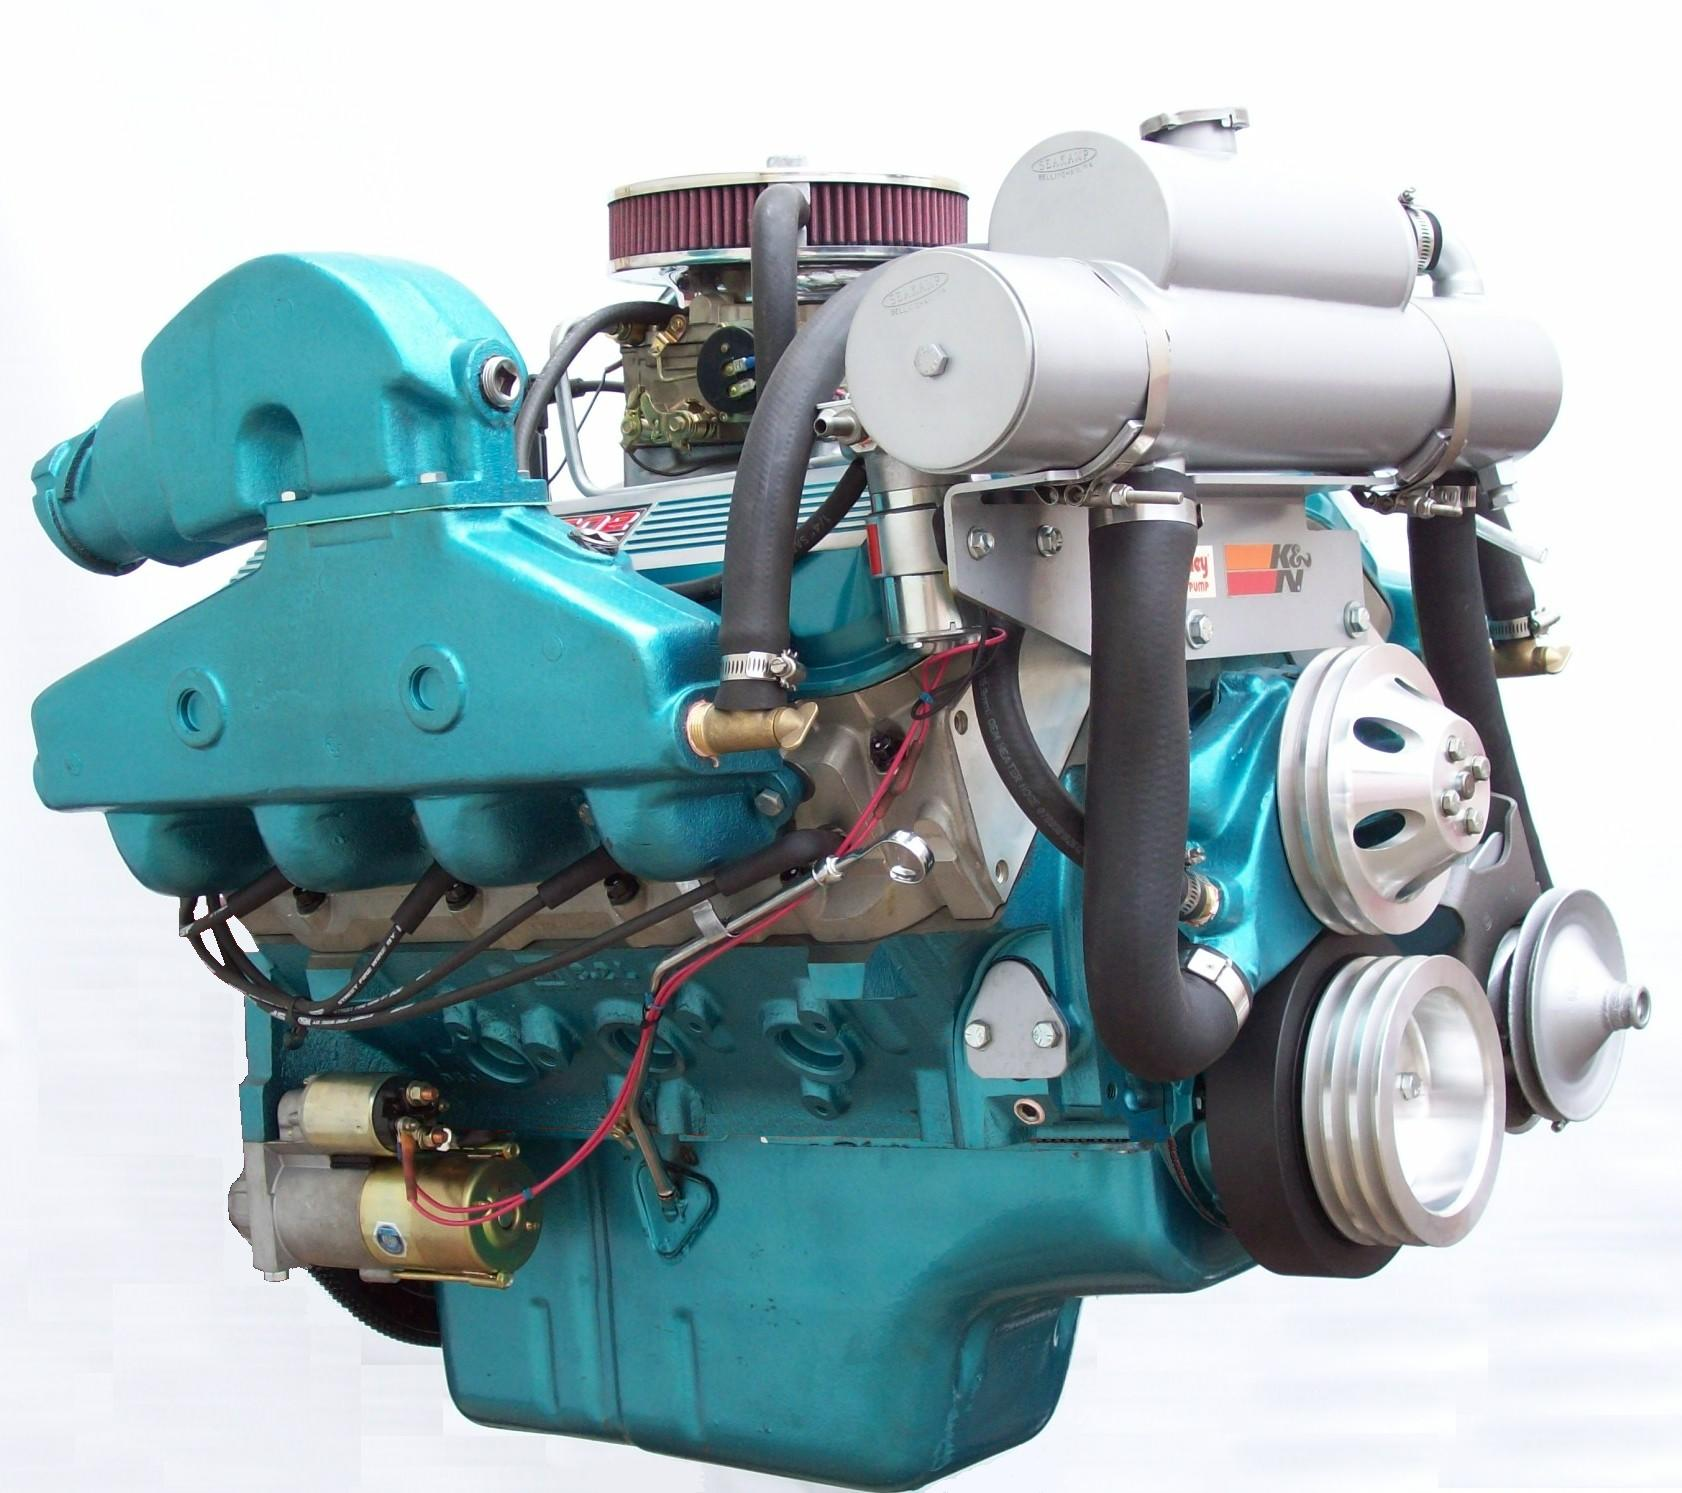 454ClosedCoolingCarb (2) marine remanufactured engines inboard crusader 454 wiring diagram 2000 at bayanpartner.co